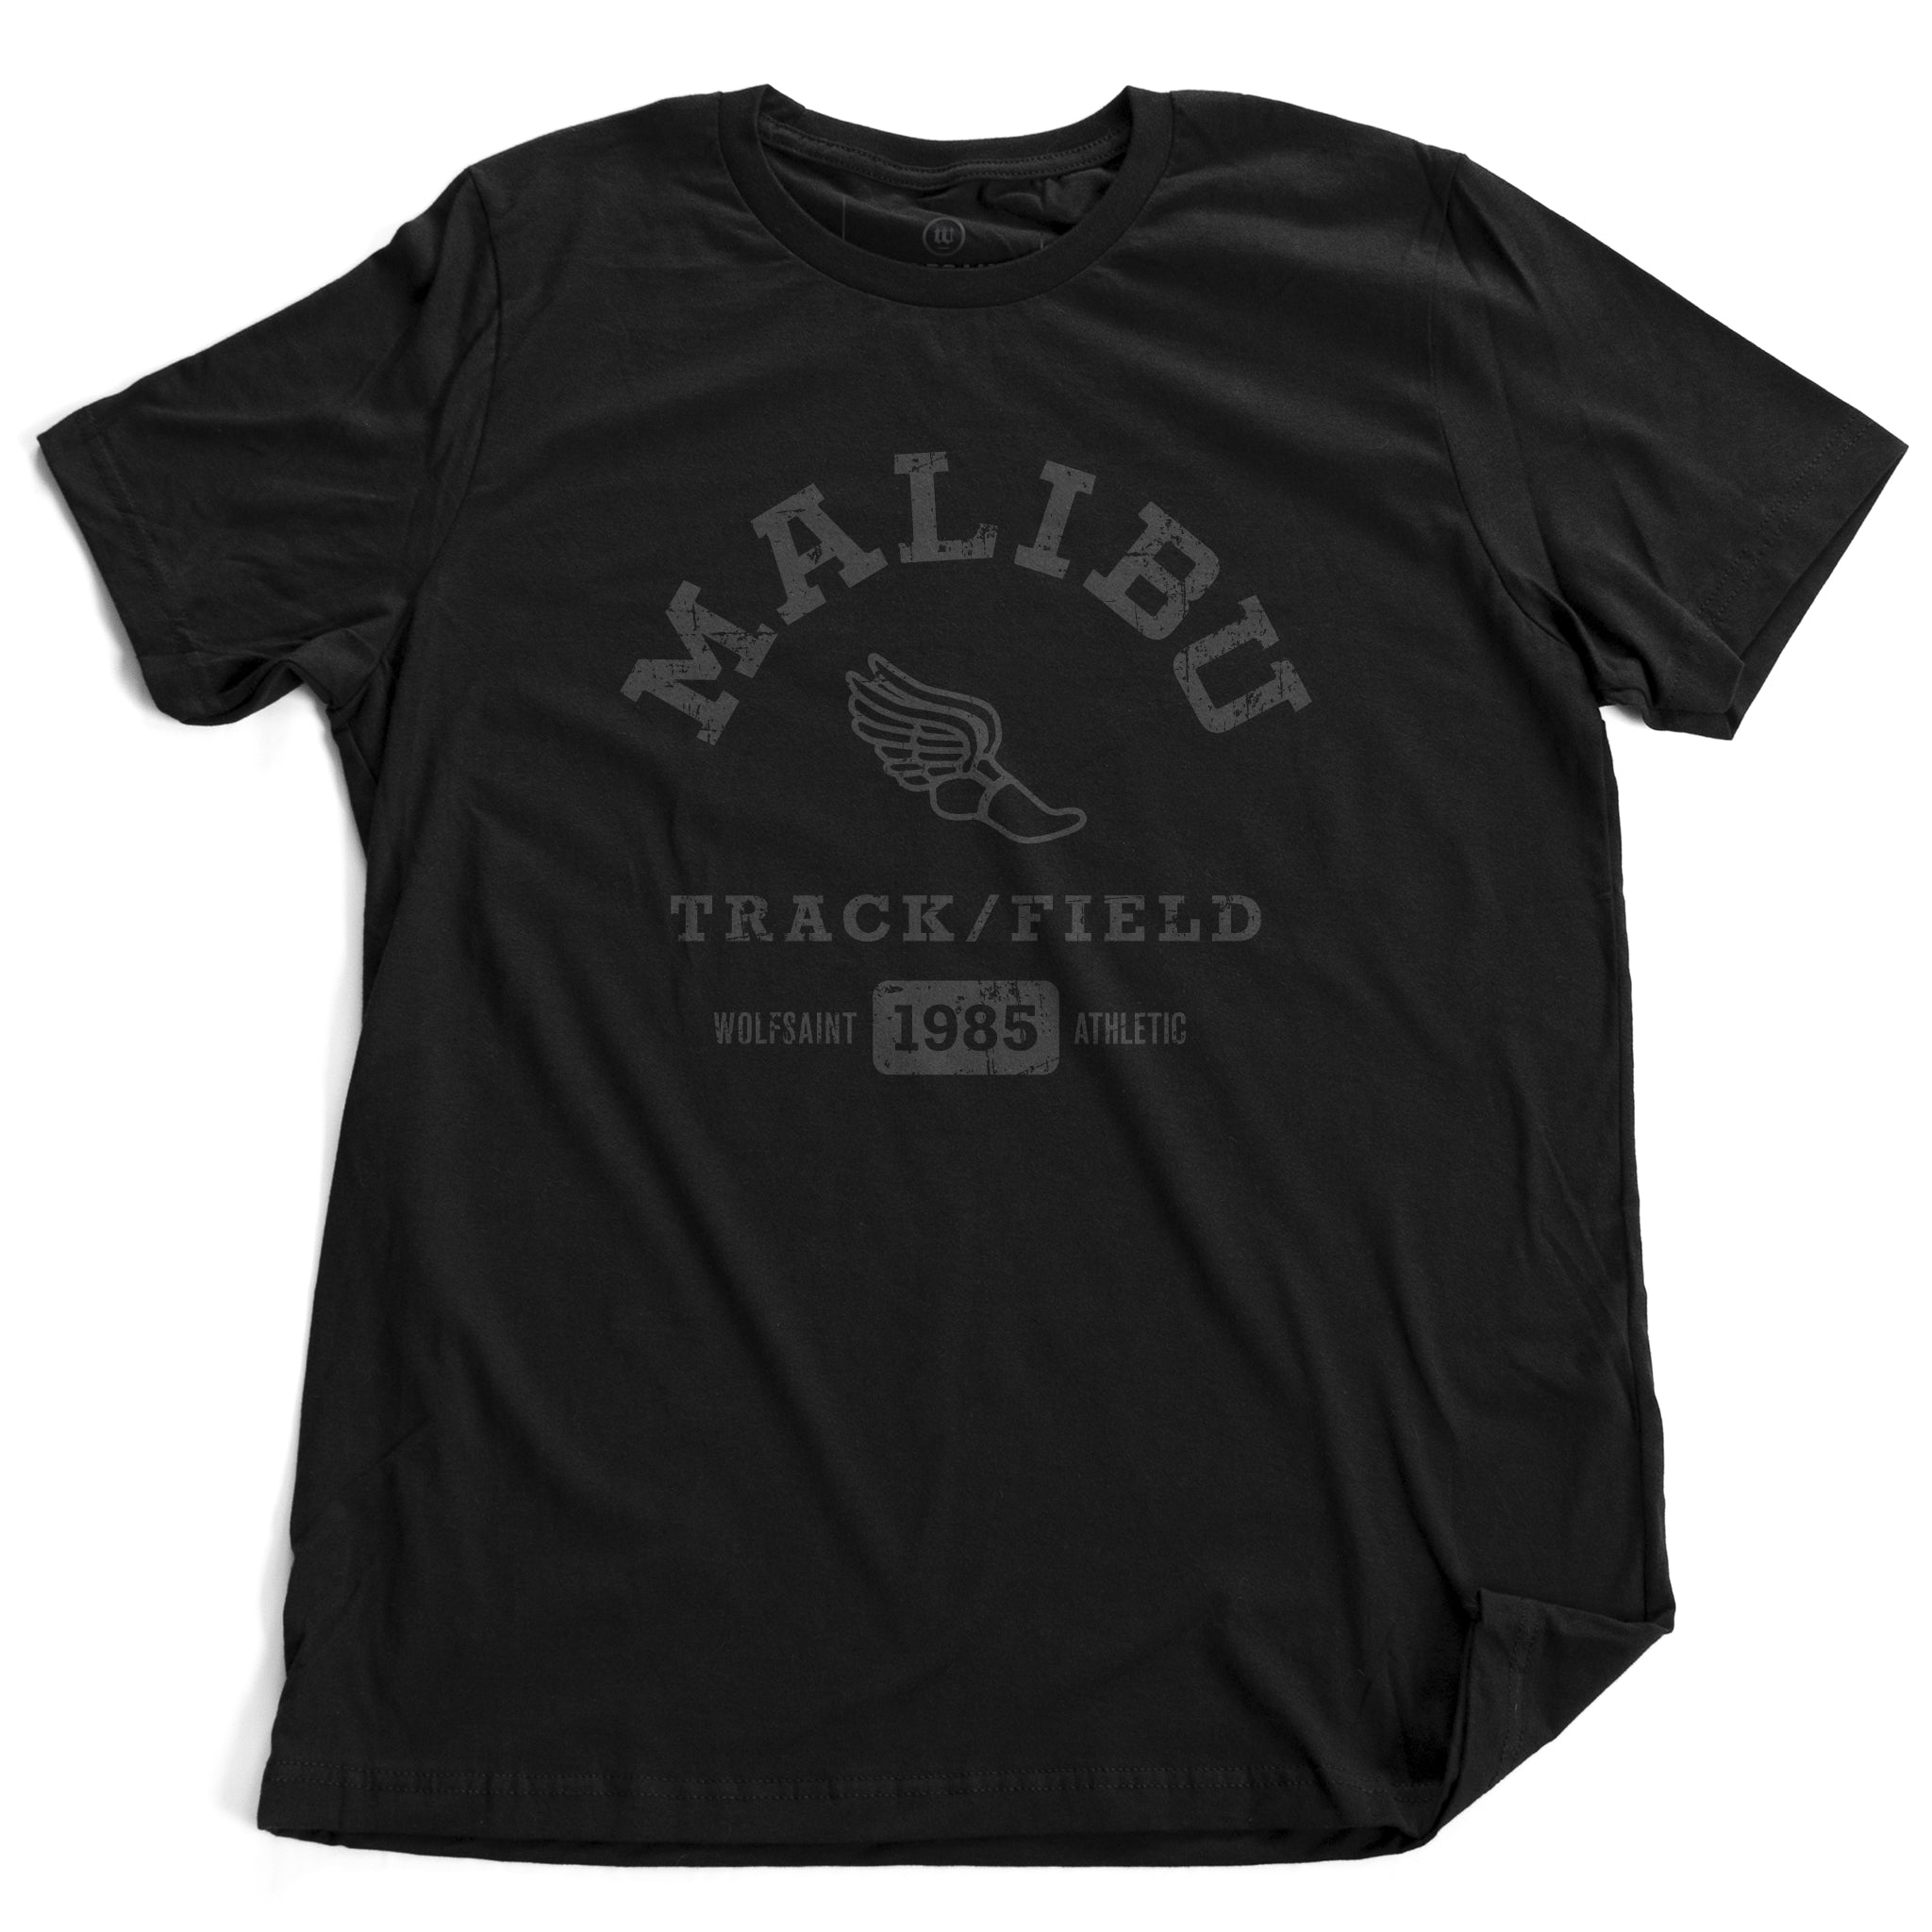 A fashionable, vintage-inspired retro t-shirt in Classic Black, featuring a graphic representing a sarcastic and fictitious Malibu (California) Track and Field team. From wolfsaint.net